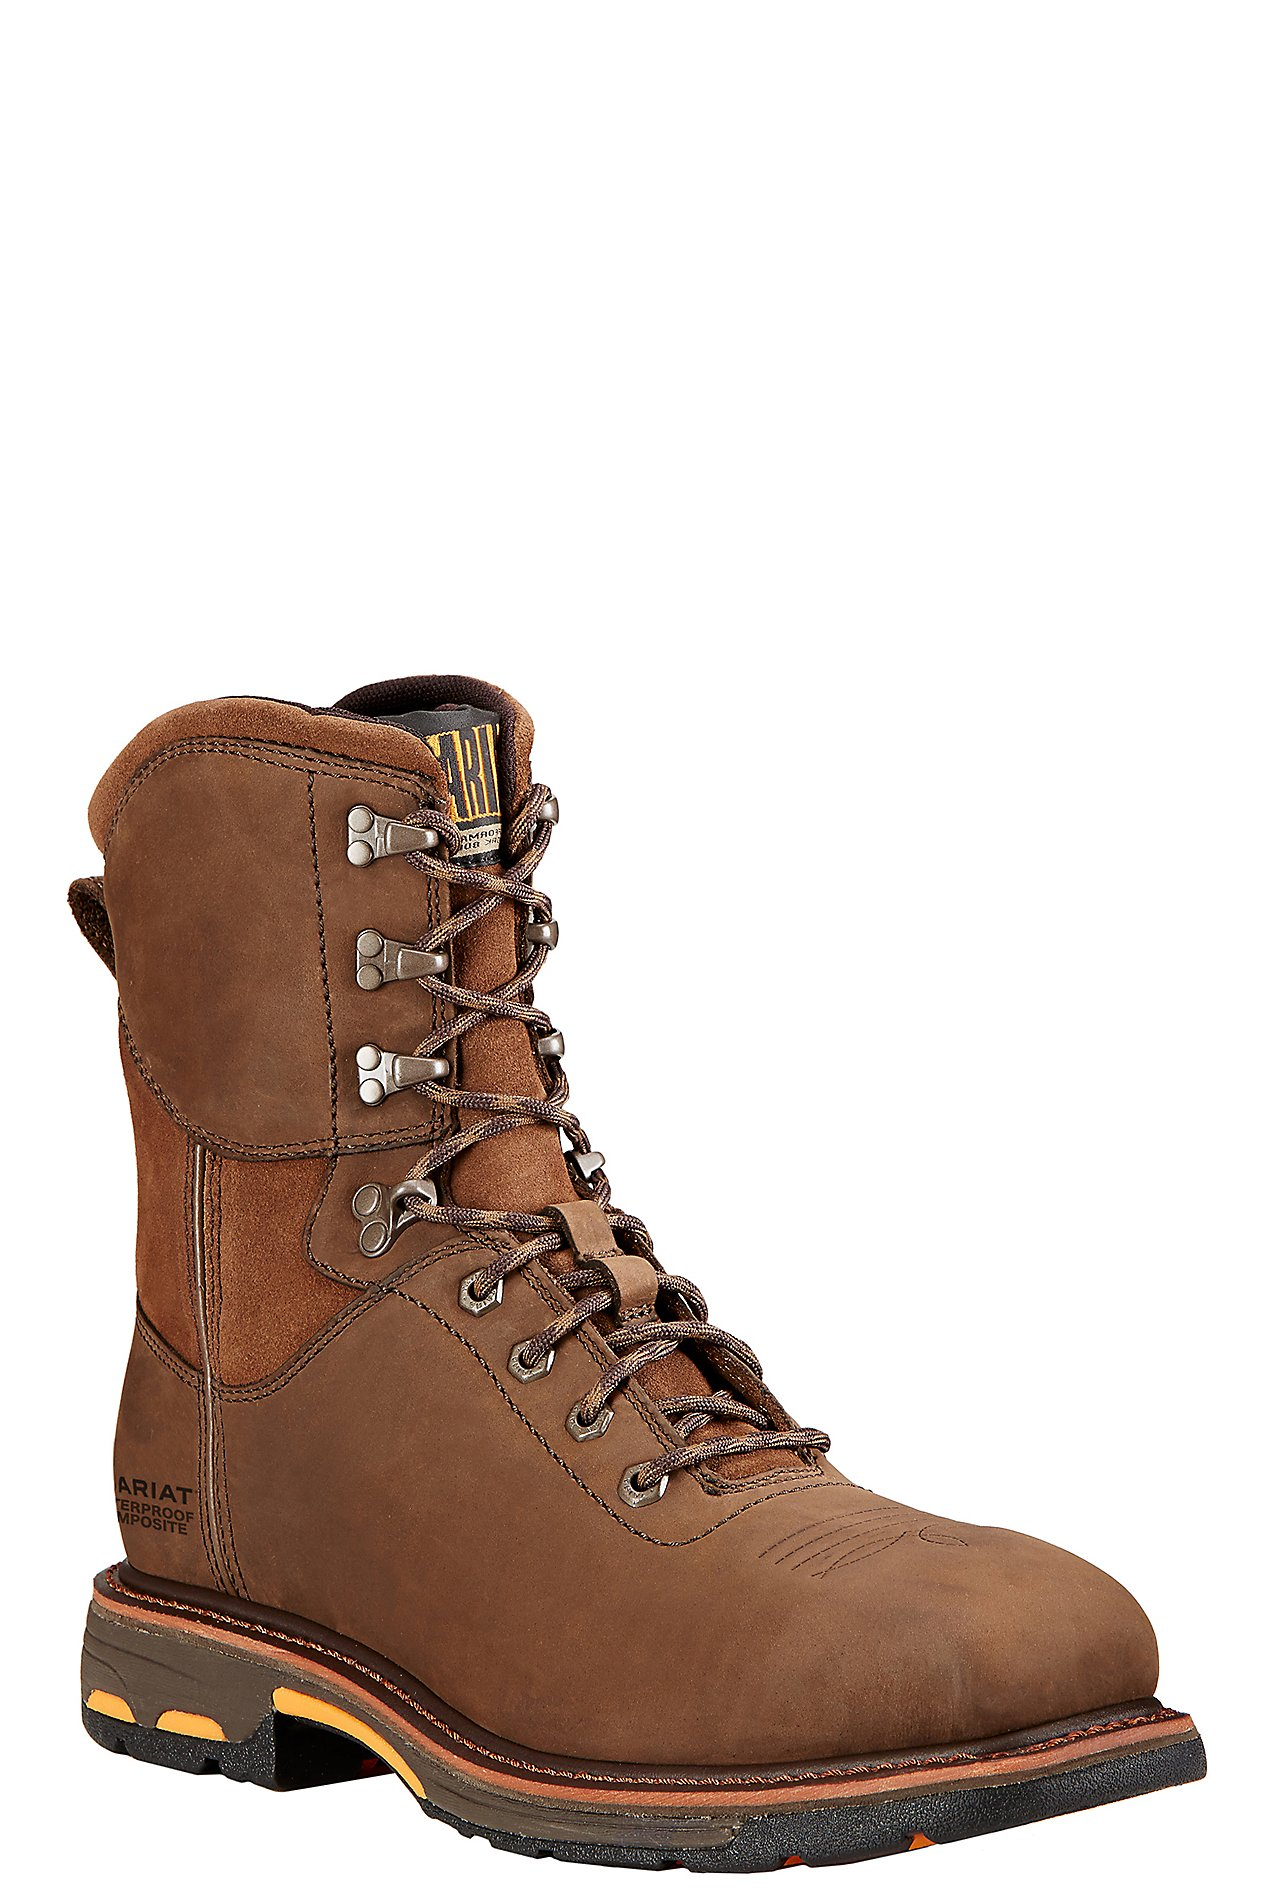 Shop Men's Work Boots   Free Shipping $50    Cavender's